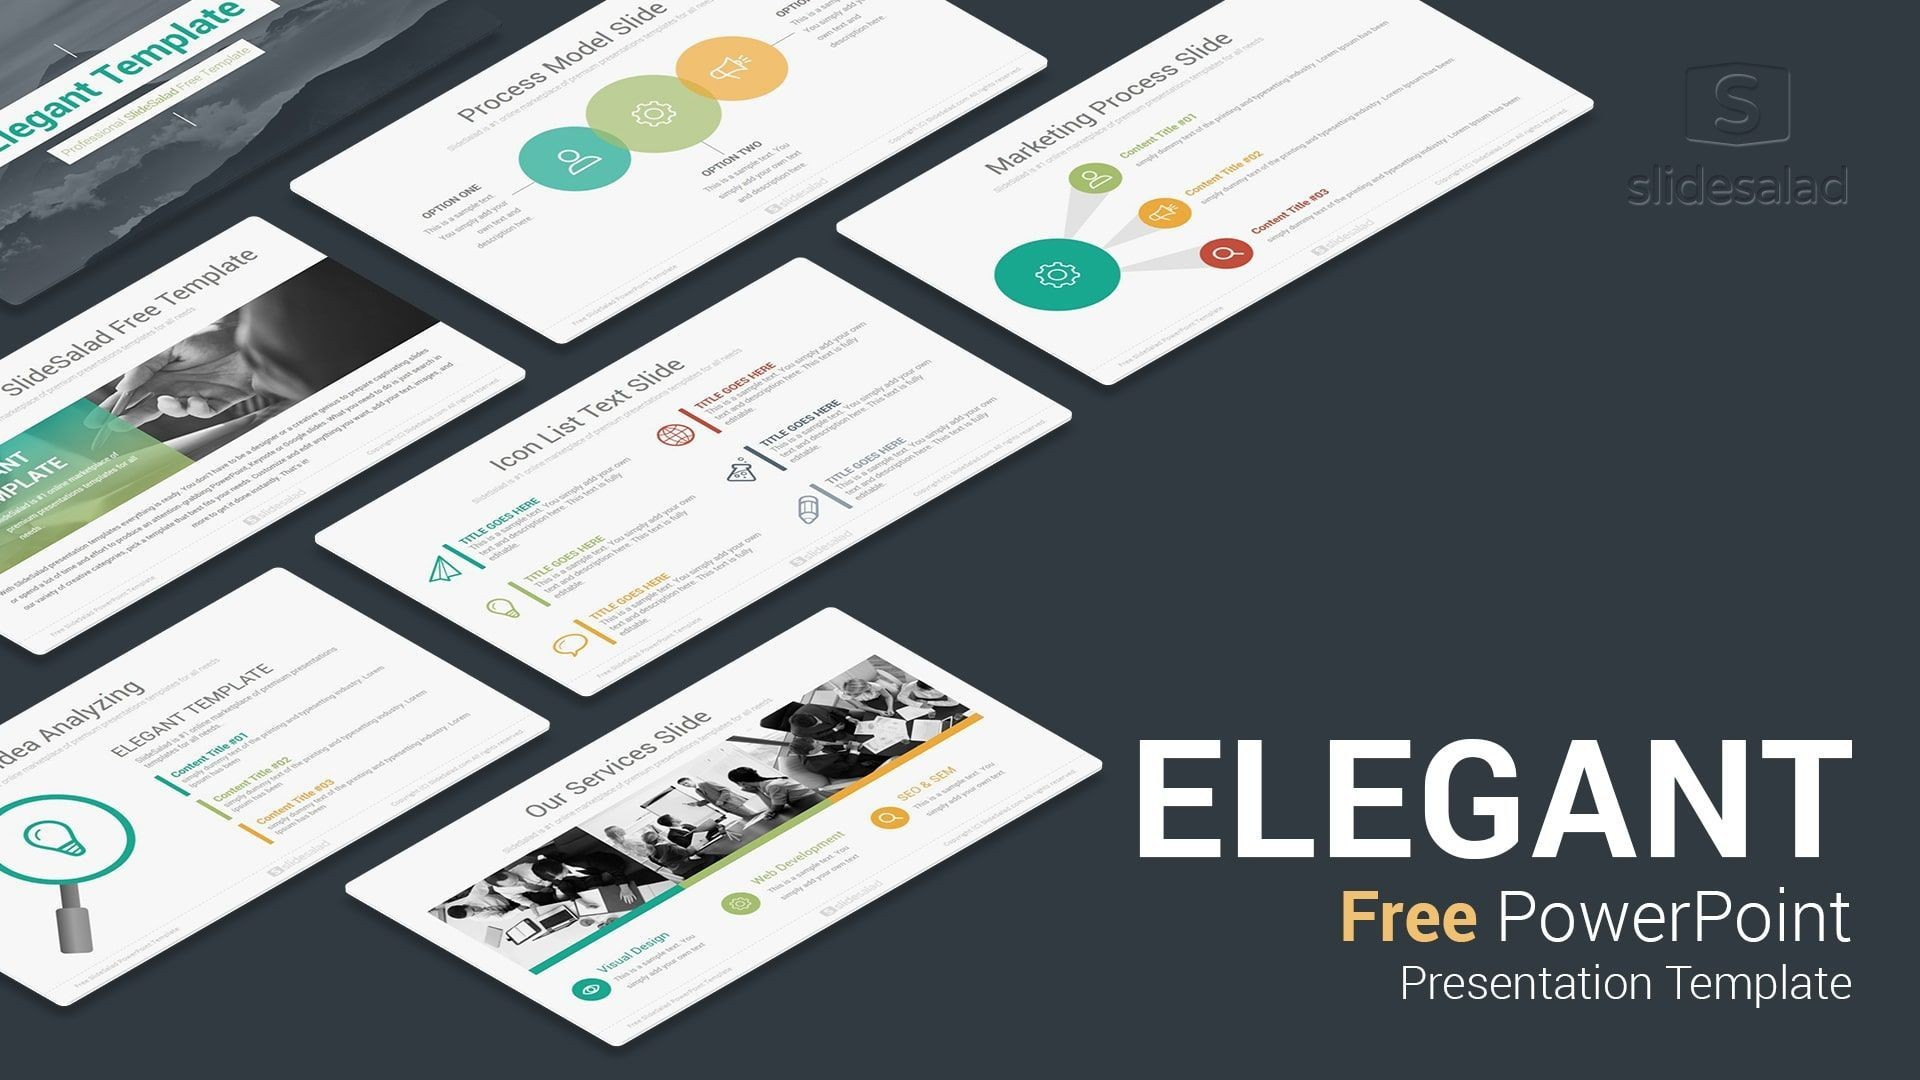 002 Remarkable Powerpoint Presentation Format Free Download High Def  Influencer Template Company Ppt Sample1920